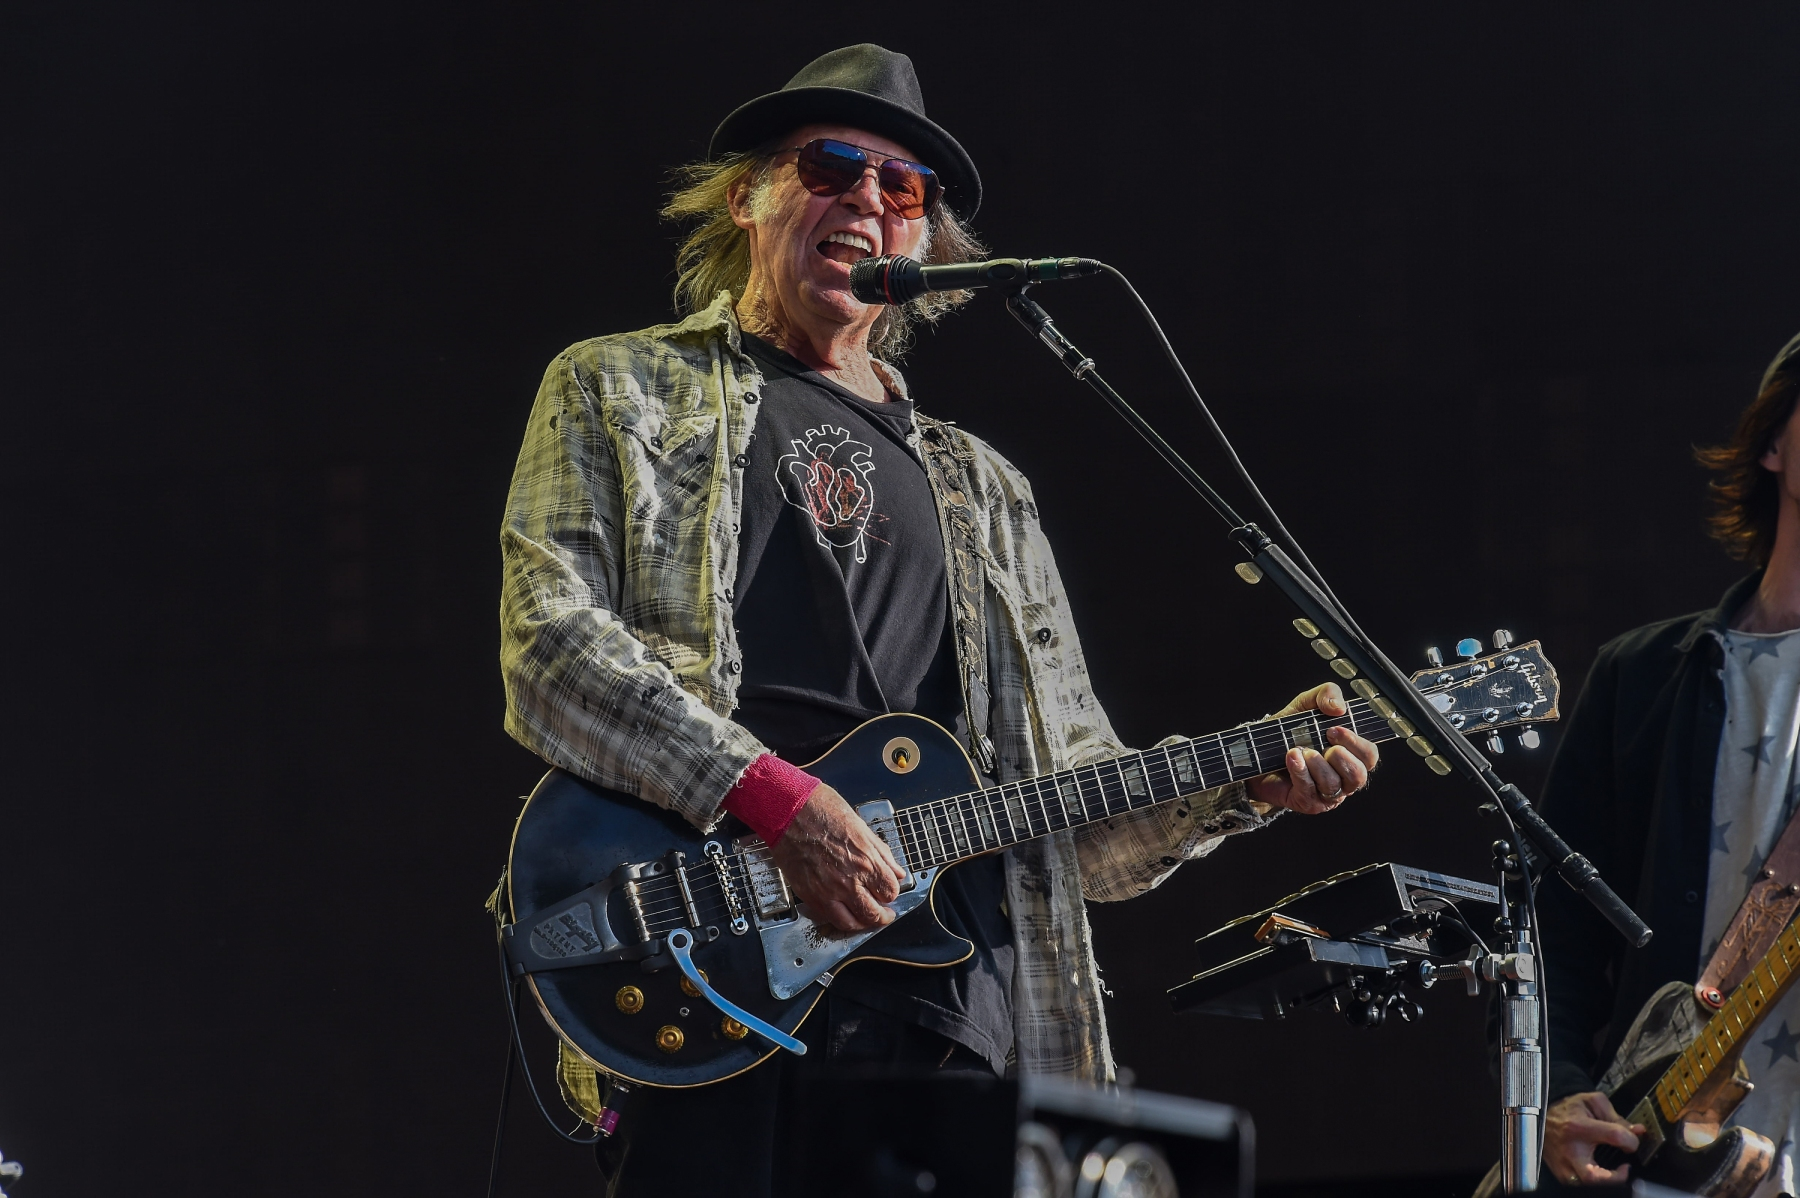 LONDON, ENGLAND - JULY 12: Neil Young performs as part of a historic double bill with Neil Young & Bob Dylan at Hyde Park on July 12, 2019 in London, England. (Photo by Brian Rasic/WireImage)